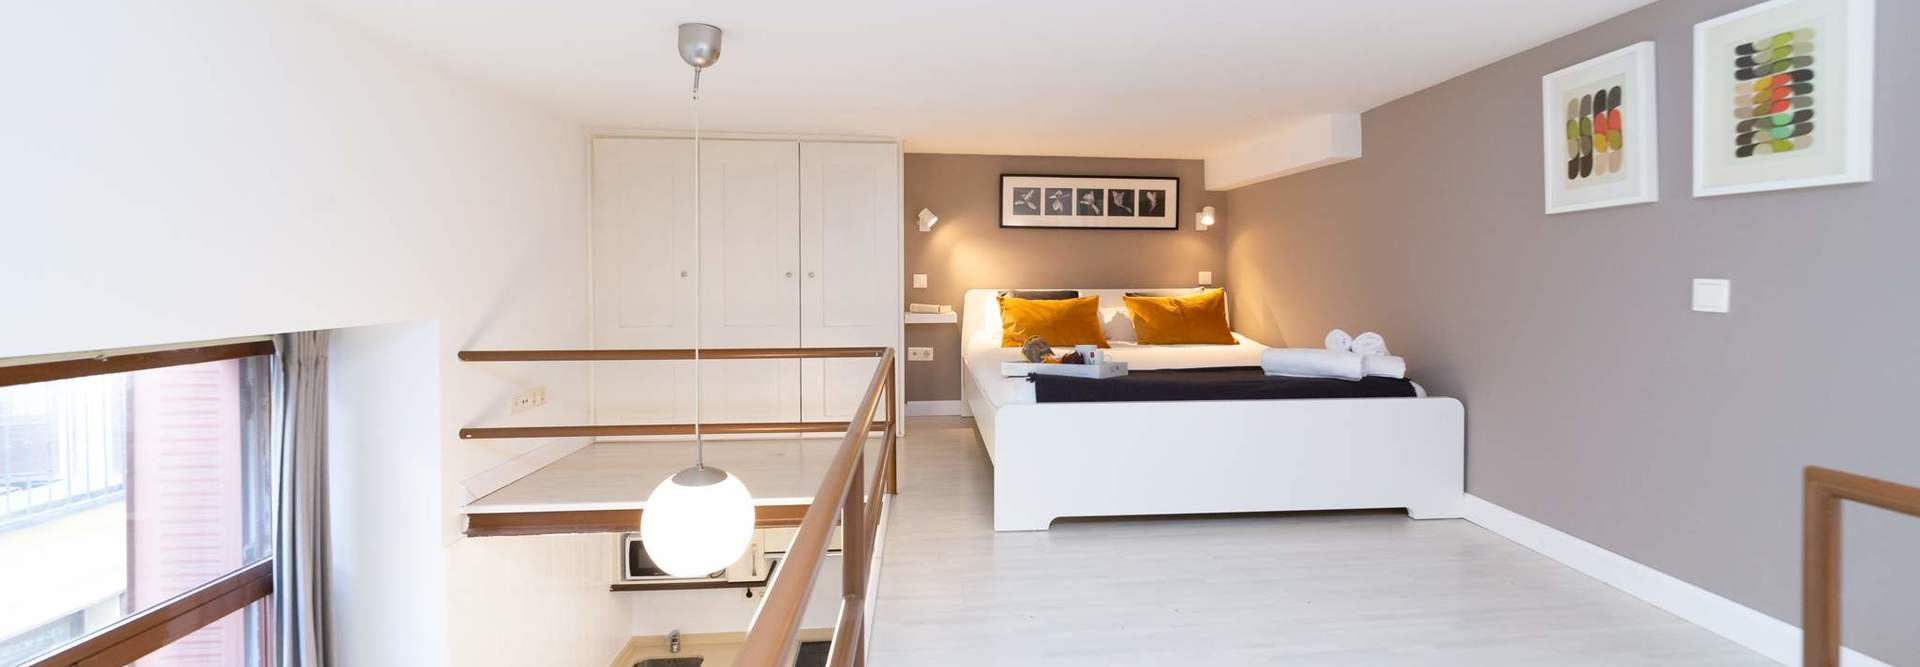 Home alquiler apartamentos madrid mad4rent 14